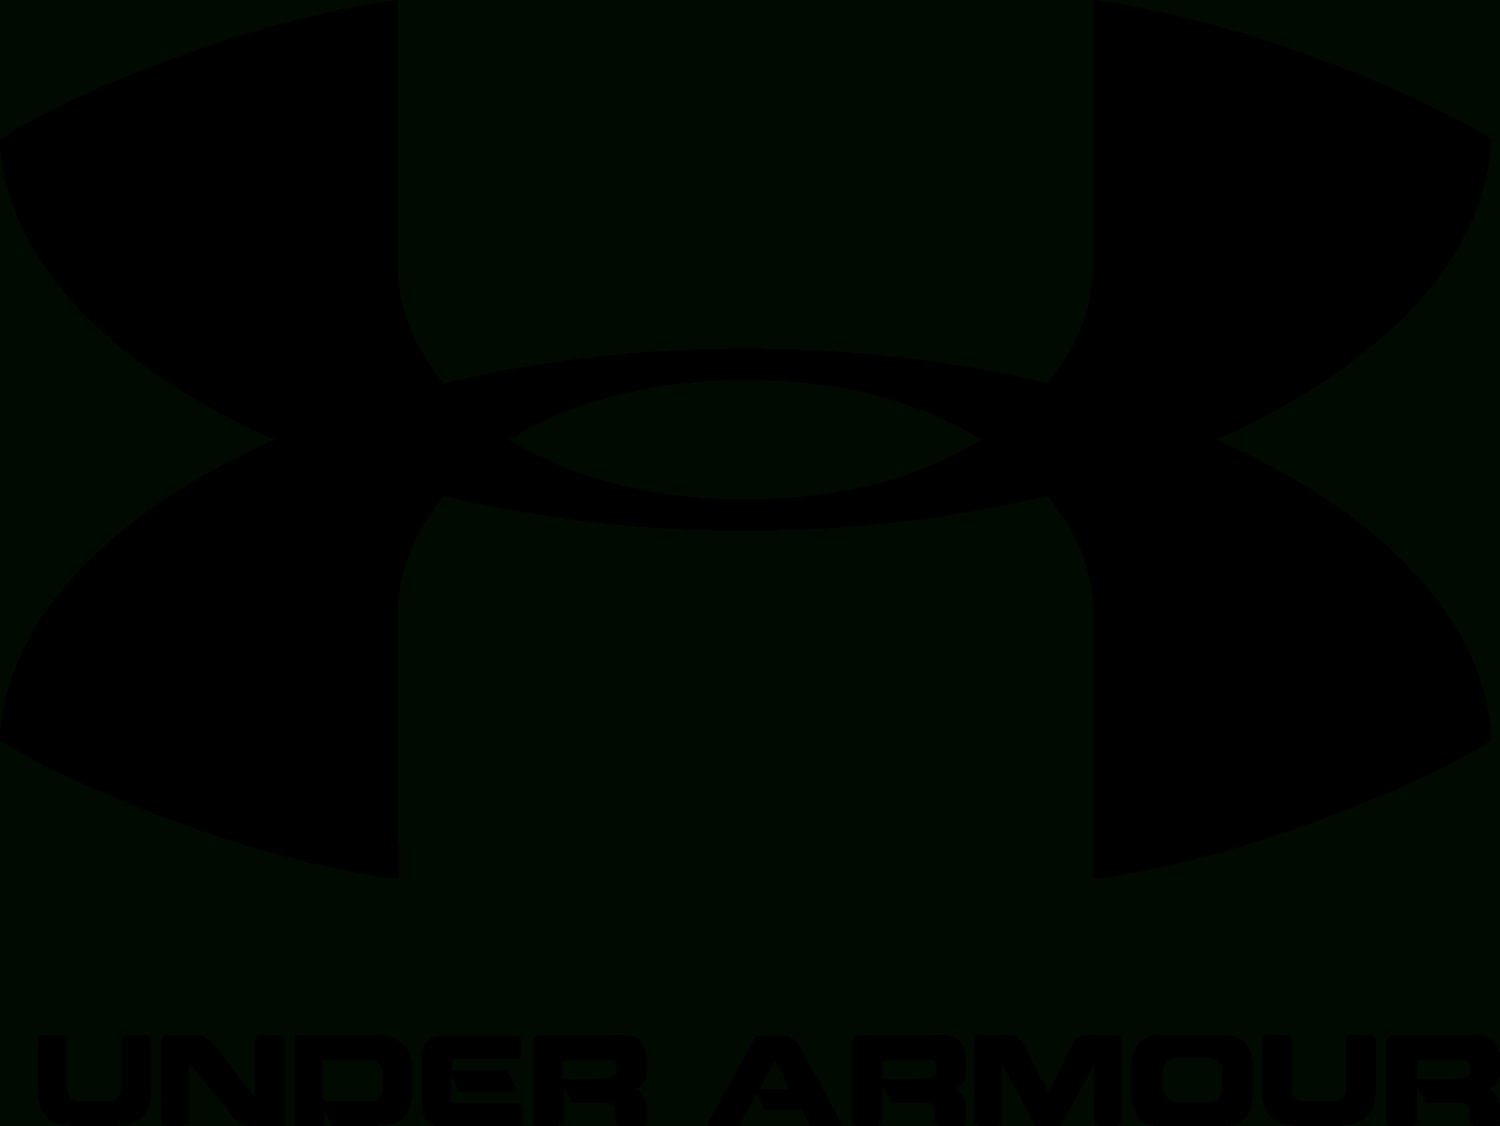 under armour corporate apparel